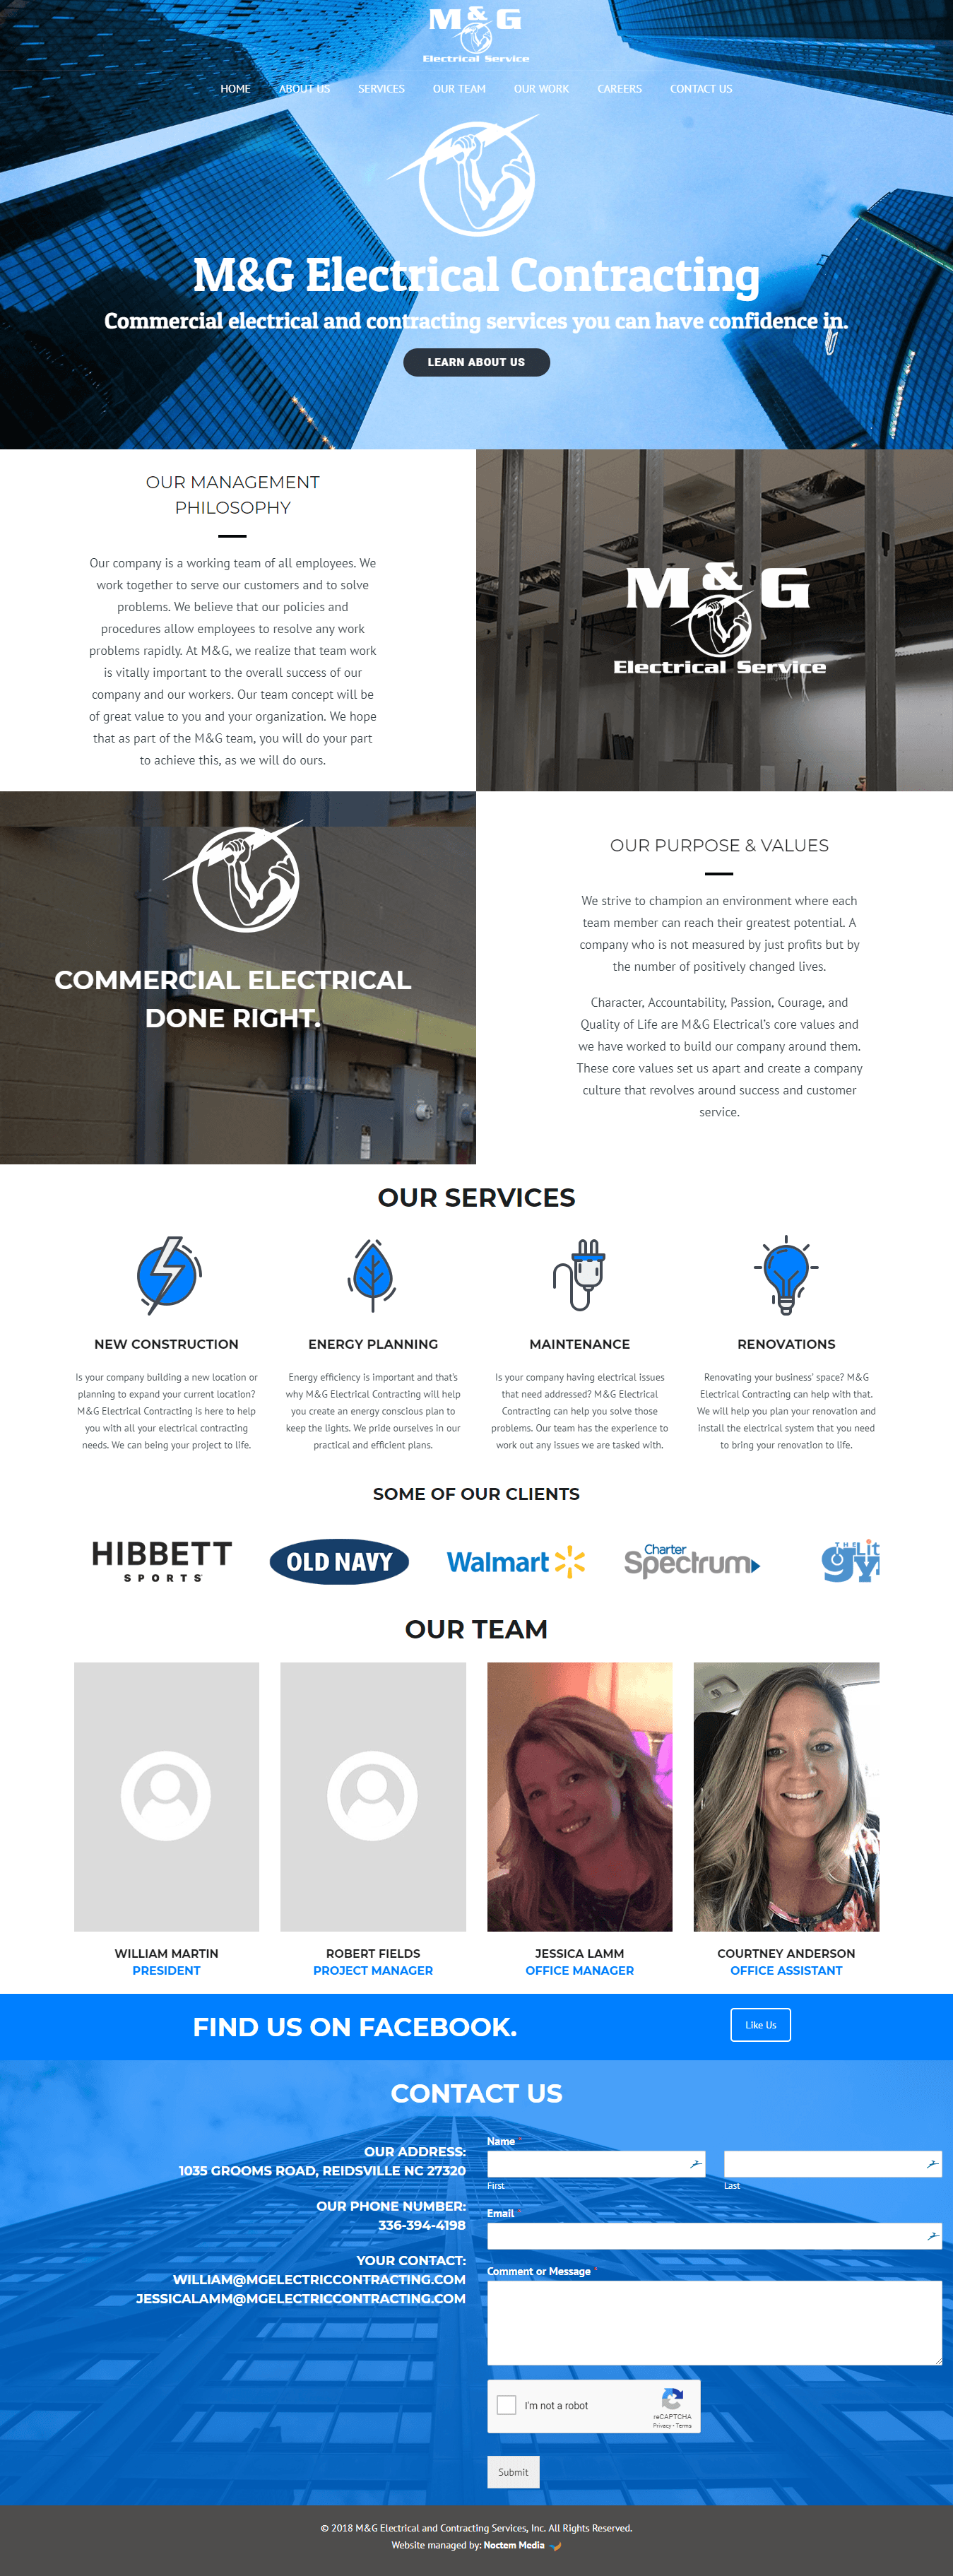 iMac with screenshot of M&G Electrical Company's website designed by Greensboro website design company Noctem Media.